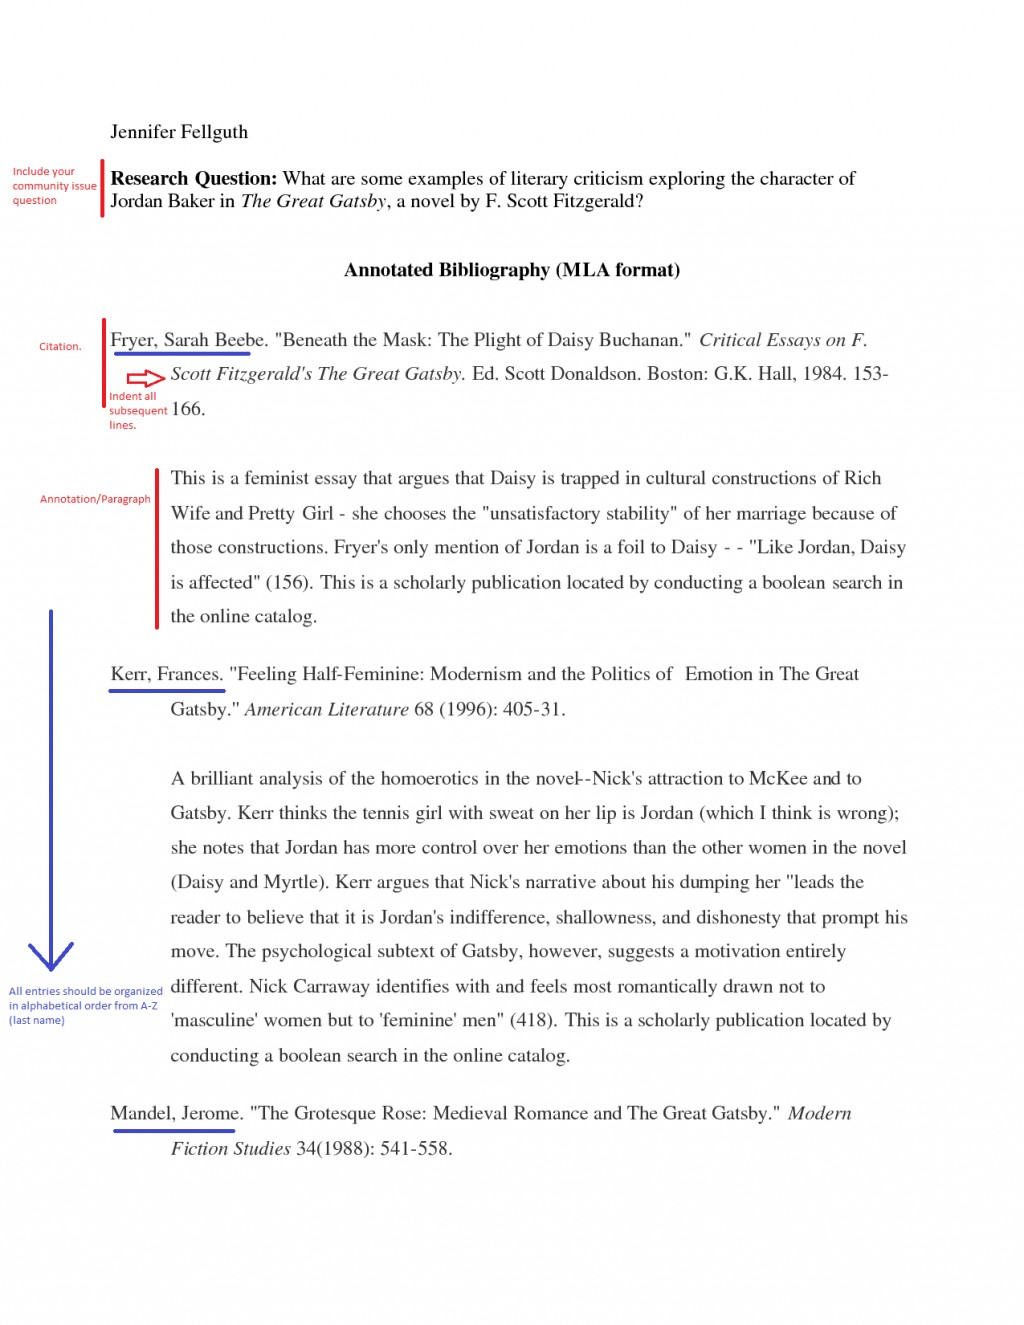 013 Essay Example Annotatedbibsampleannotated Compare And Contrast Outline Magnificent Template Comparison Sample Block Format Large